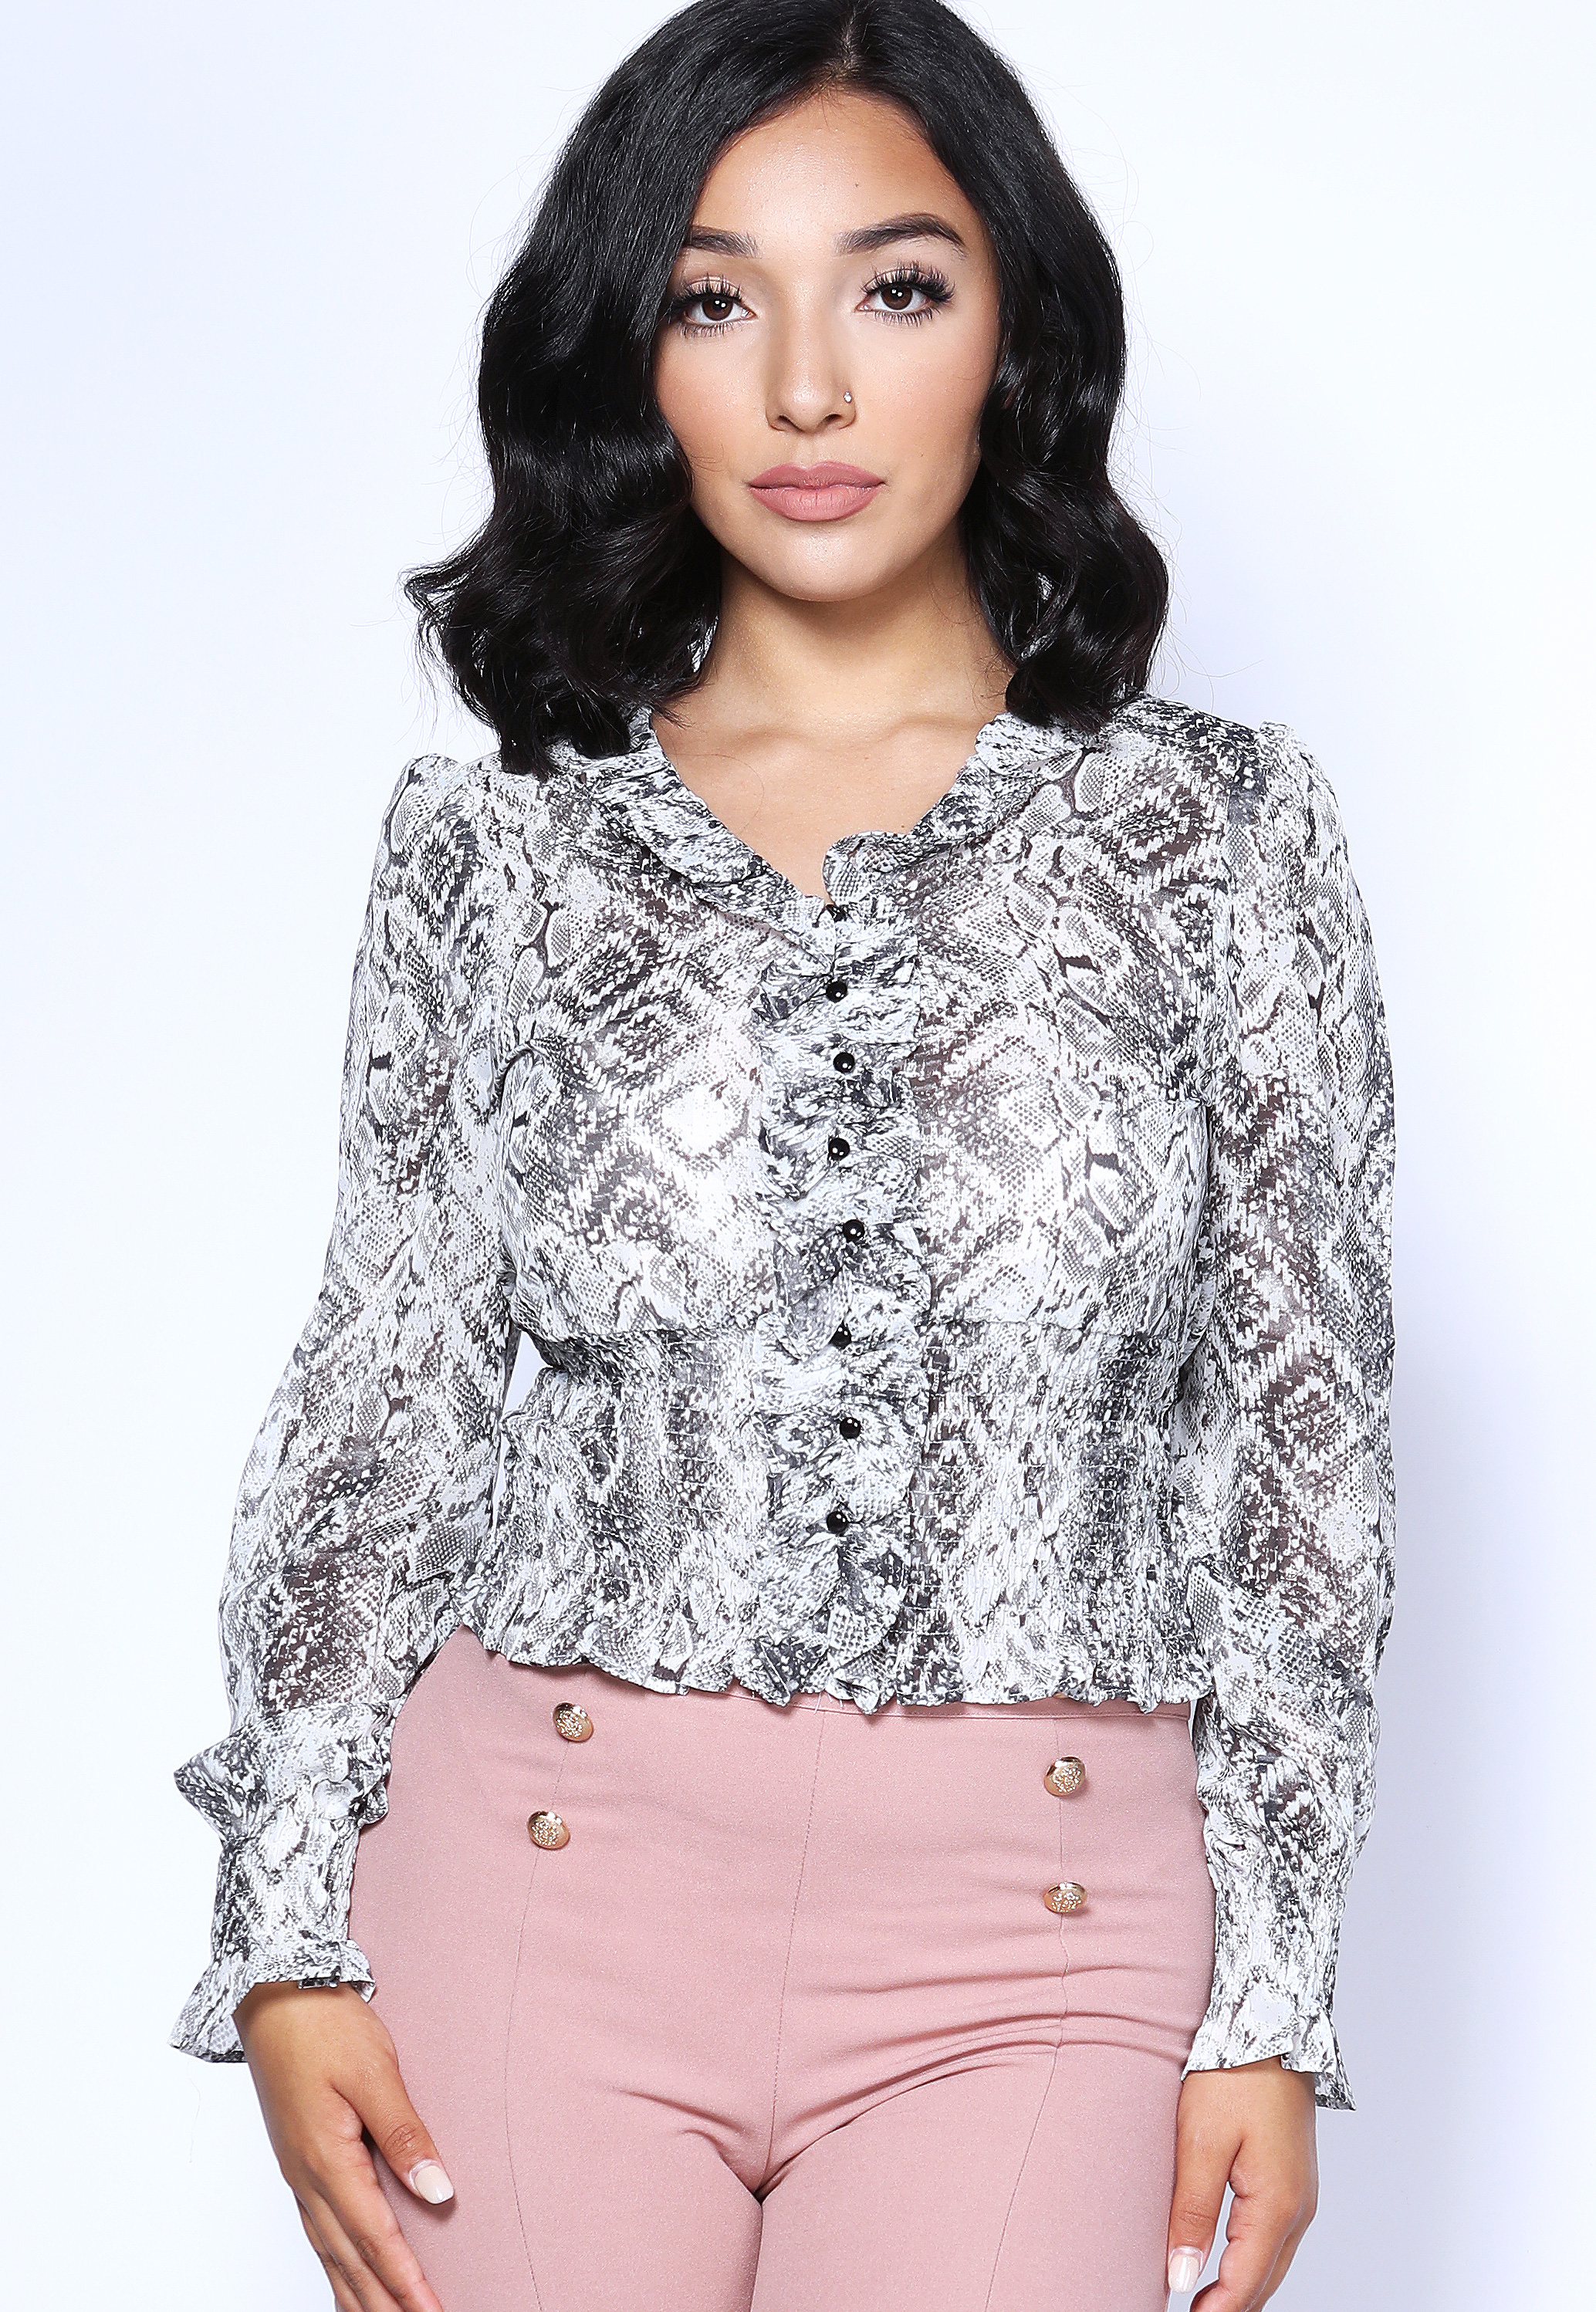 Snakeskin Print Sheer Top